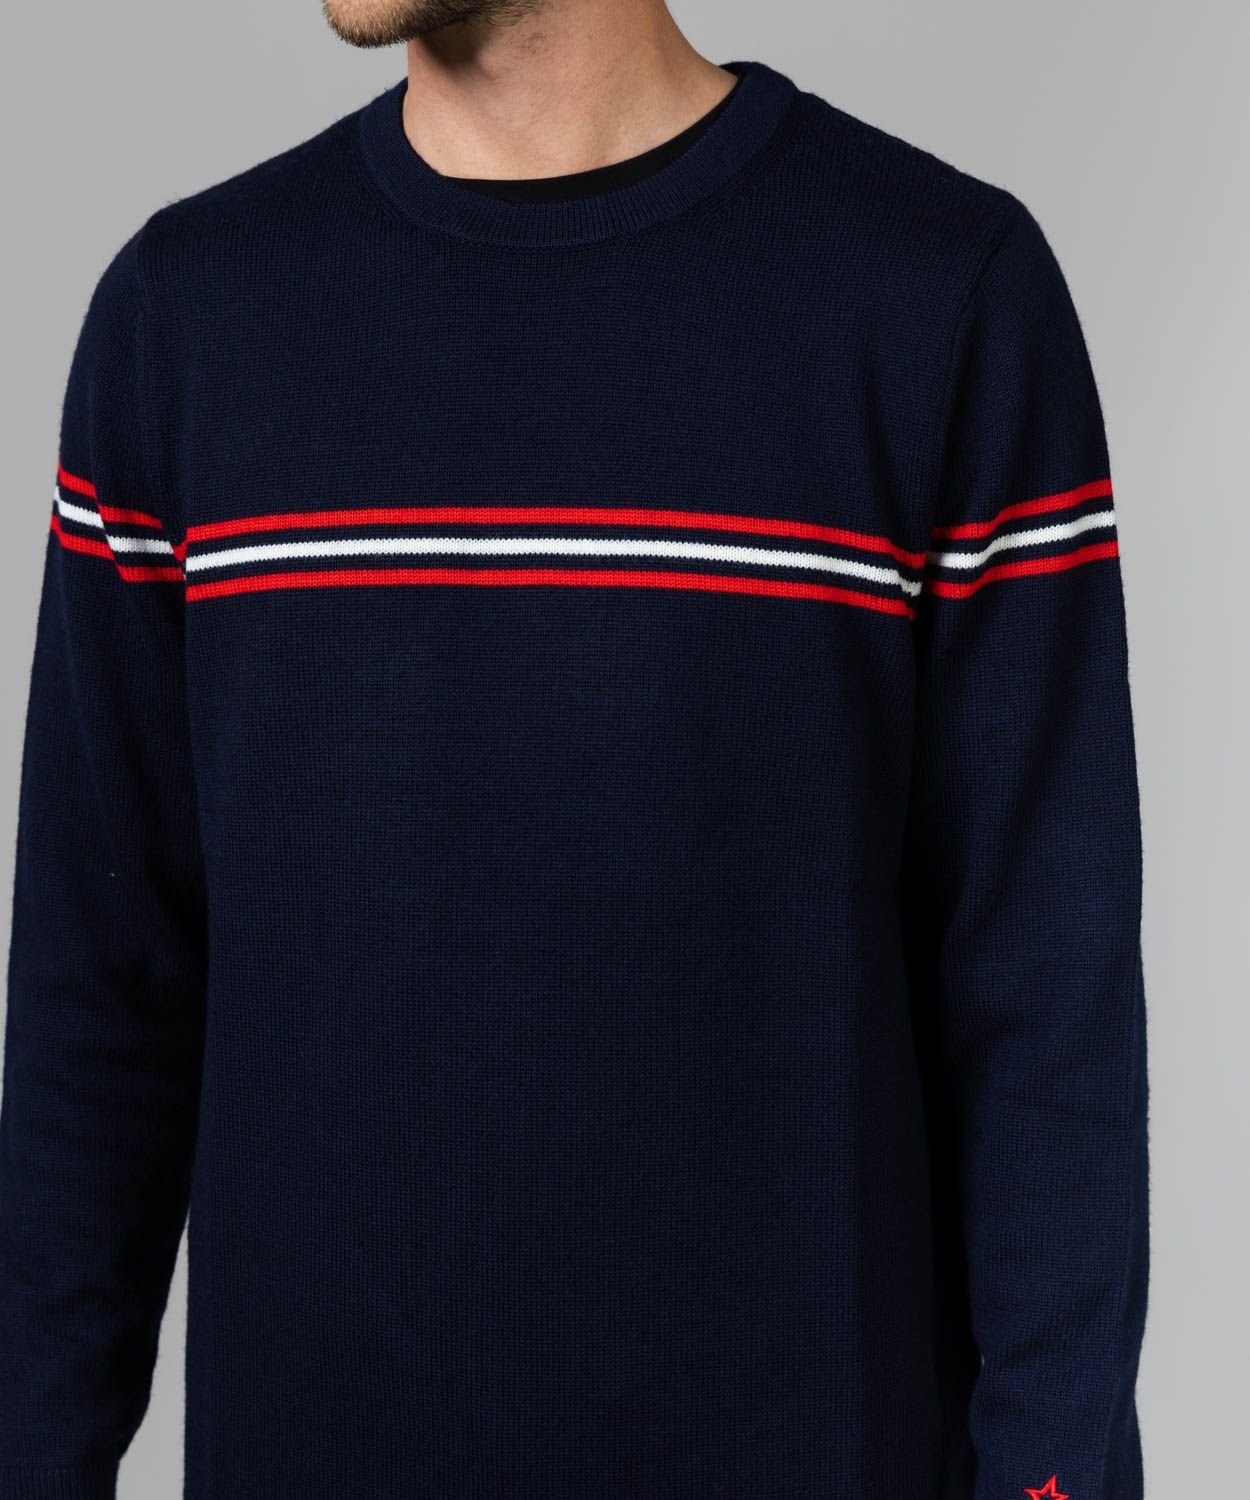 Men's Orelle Crewneck Sweater